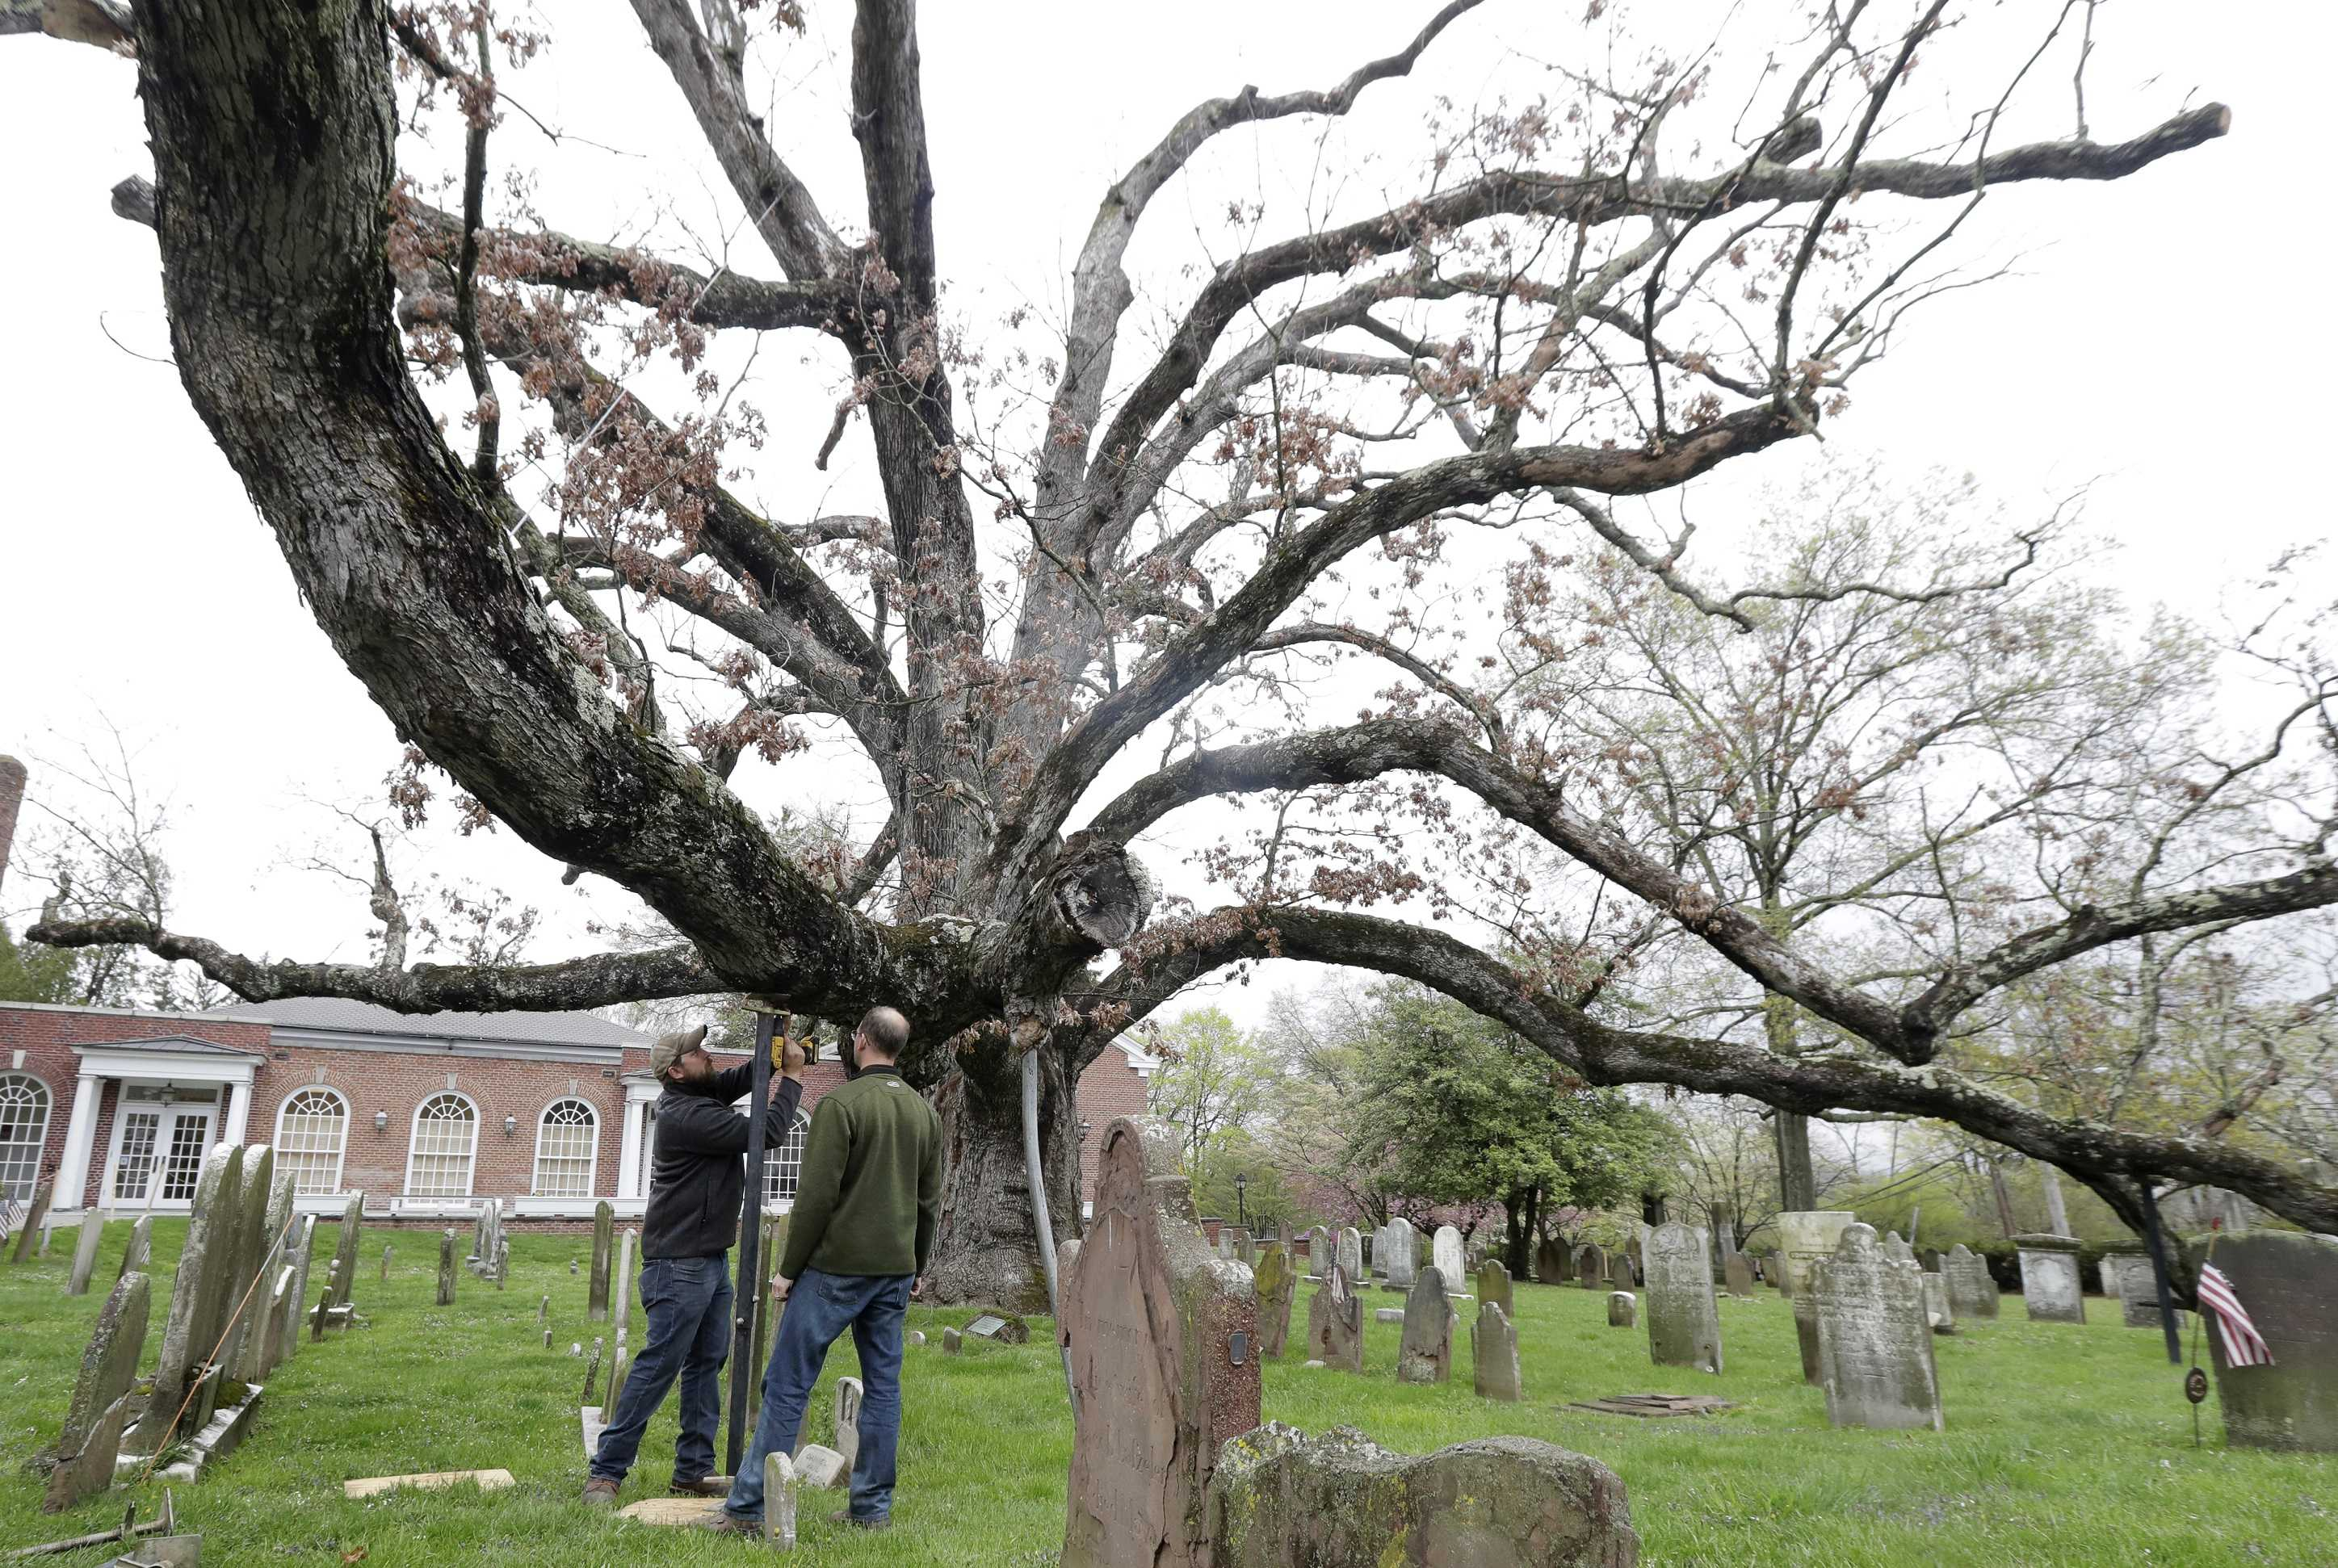 Beloved 600-year-old white oak tree takes final bow""